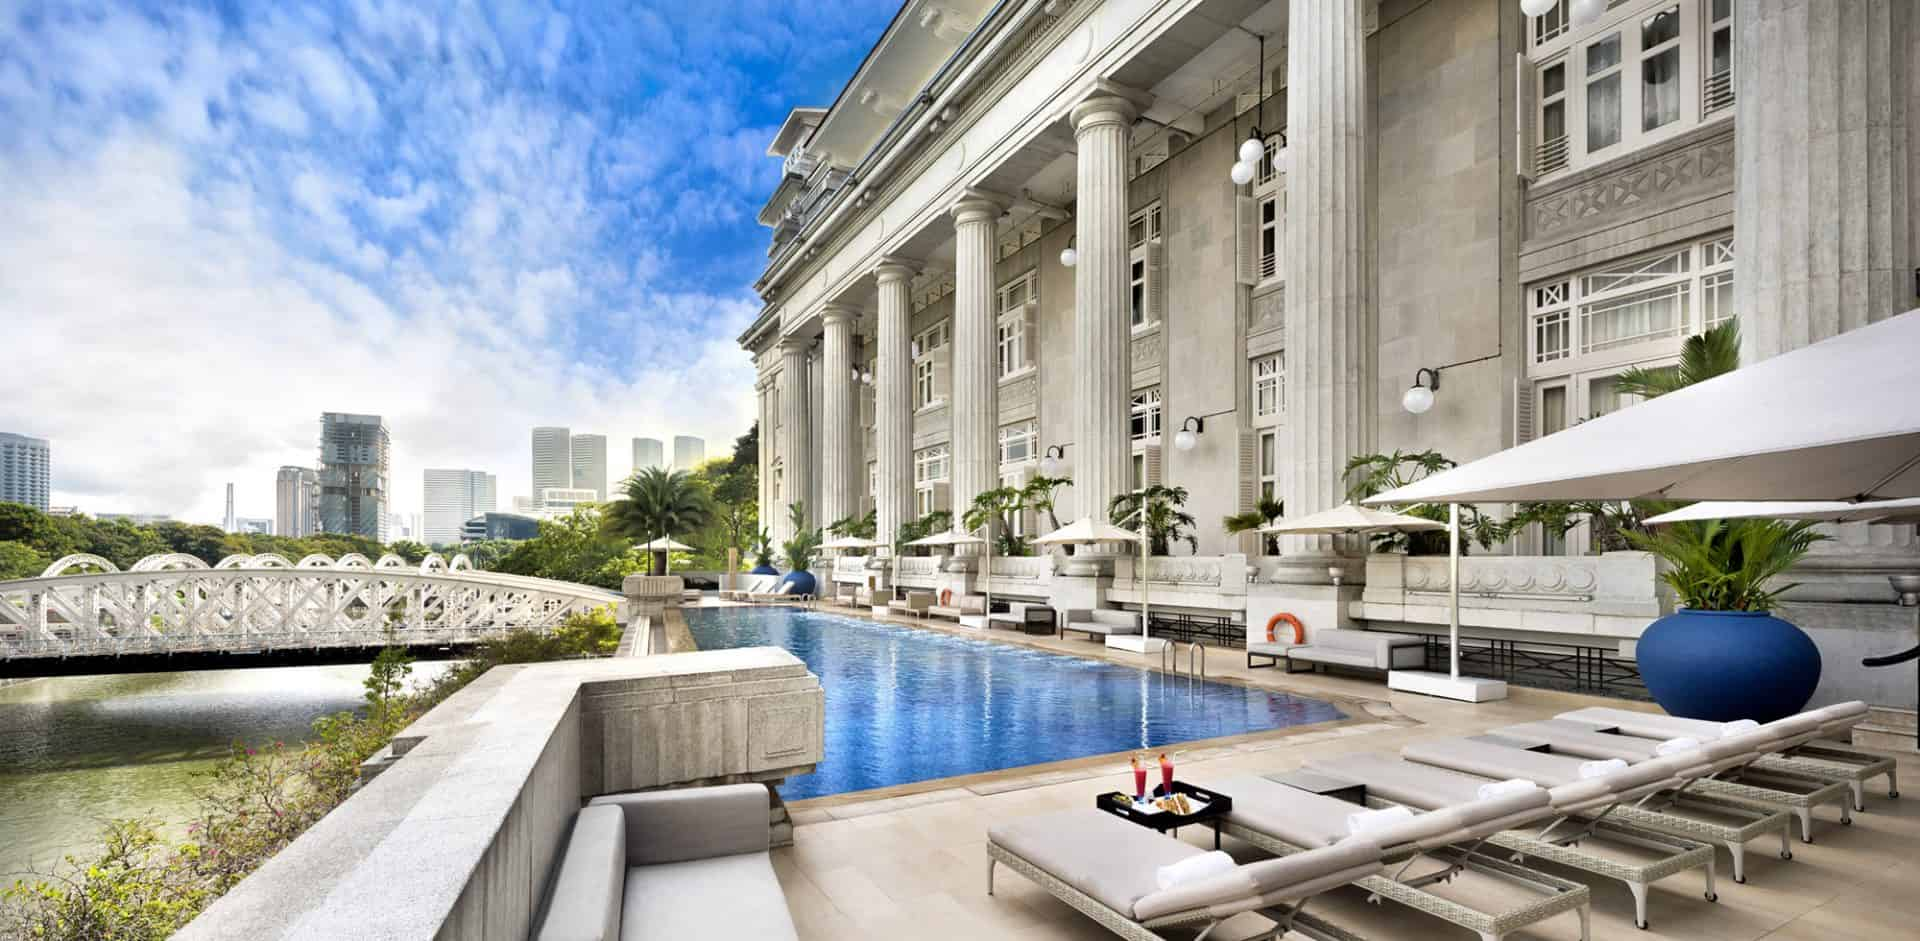 The fullerton hotel singapore pool